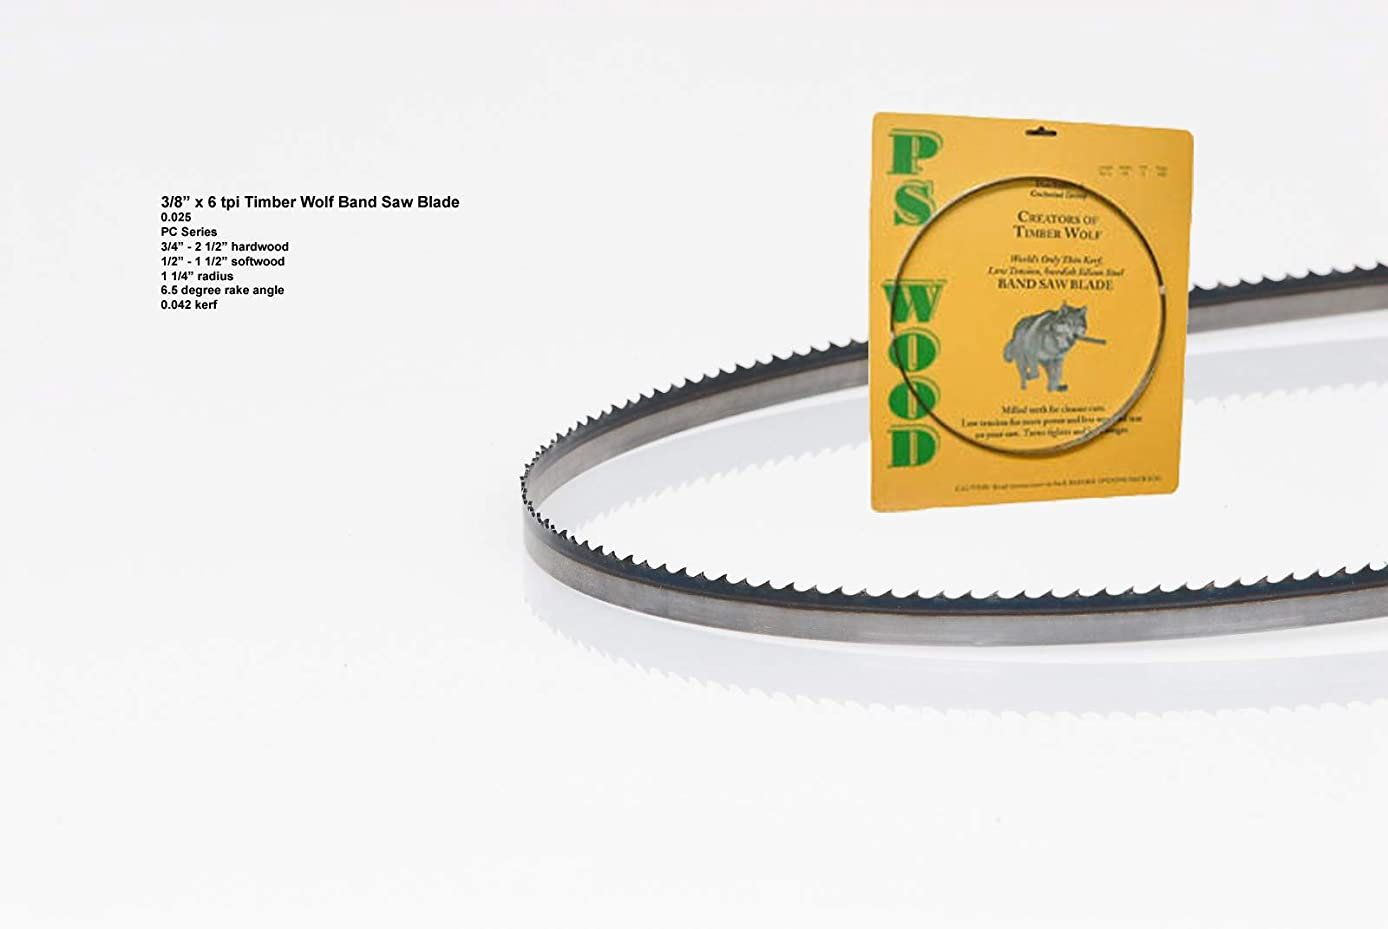 Timber Wolf 133 x 3/8 x 6 tpi band saw blade